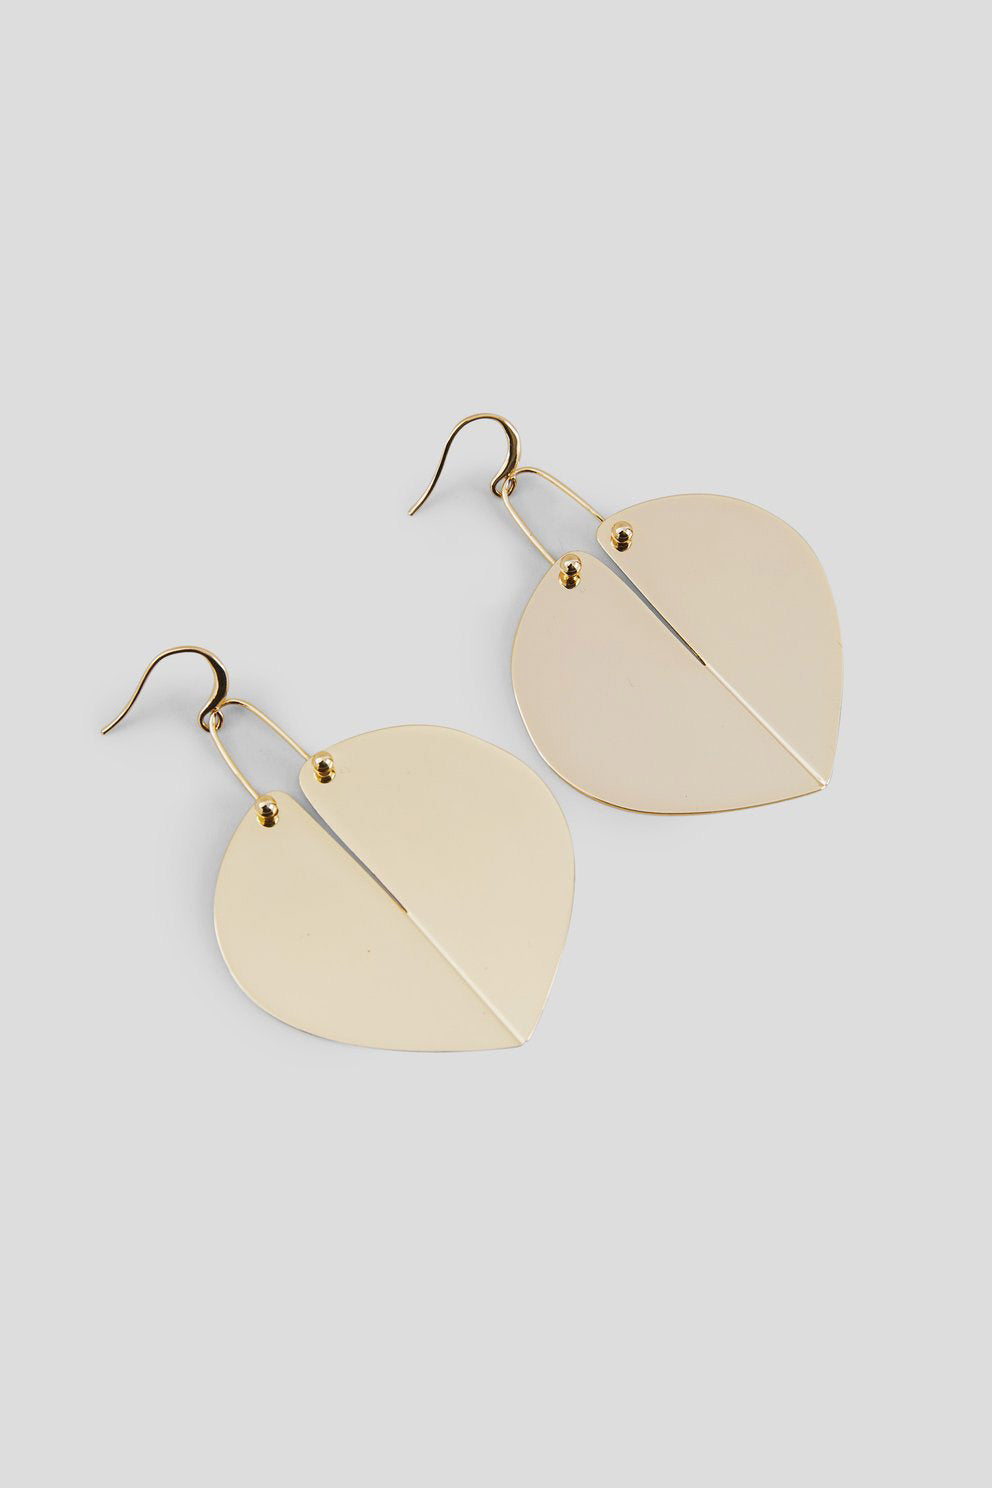 Heartbreaker Earrings in Gold